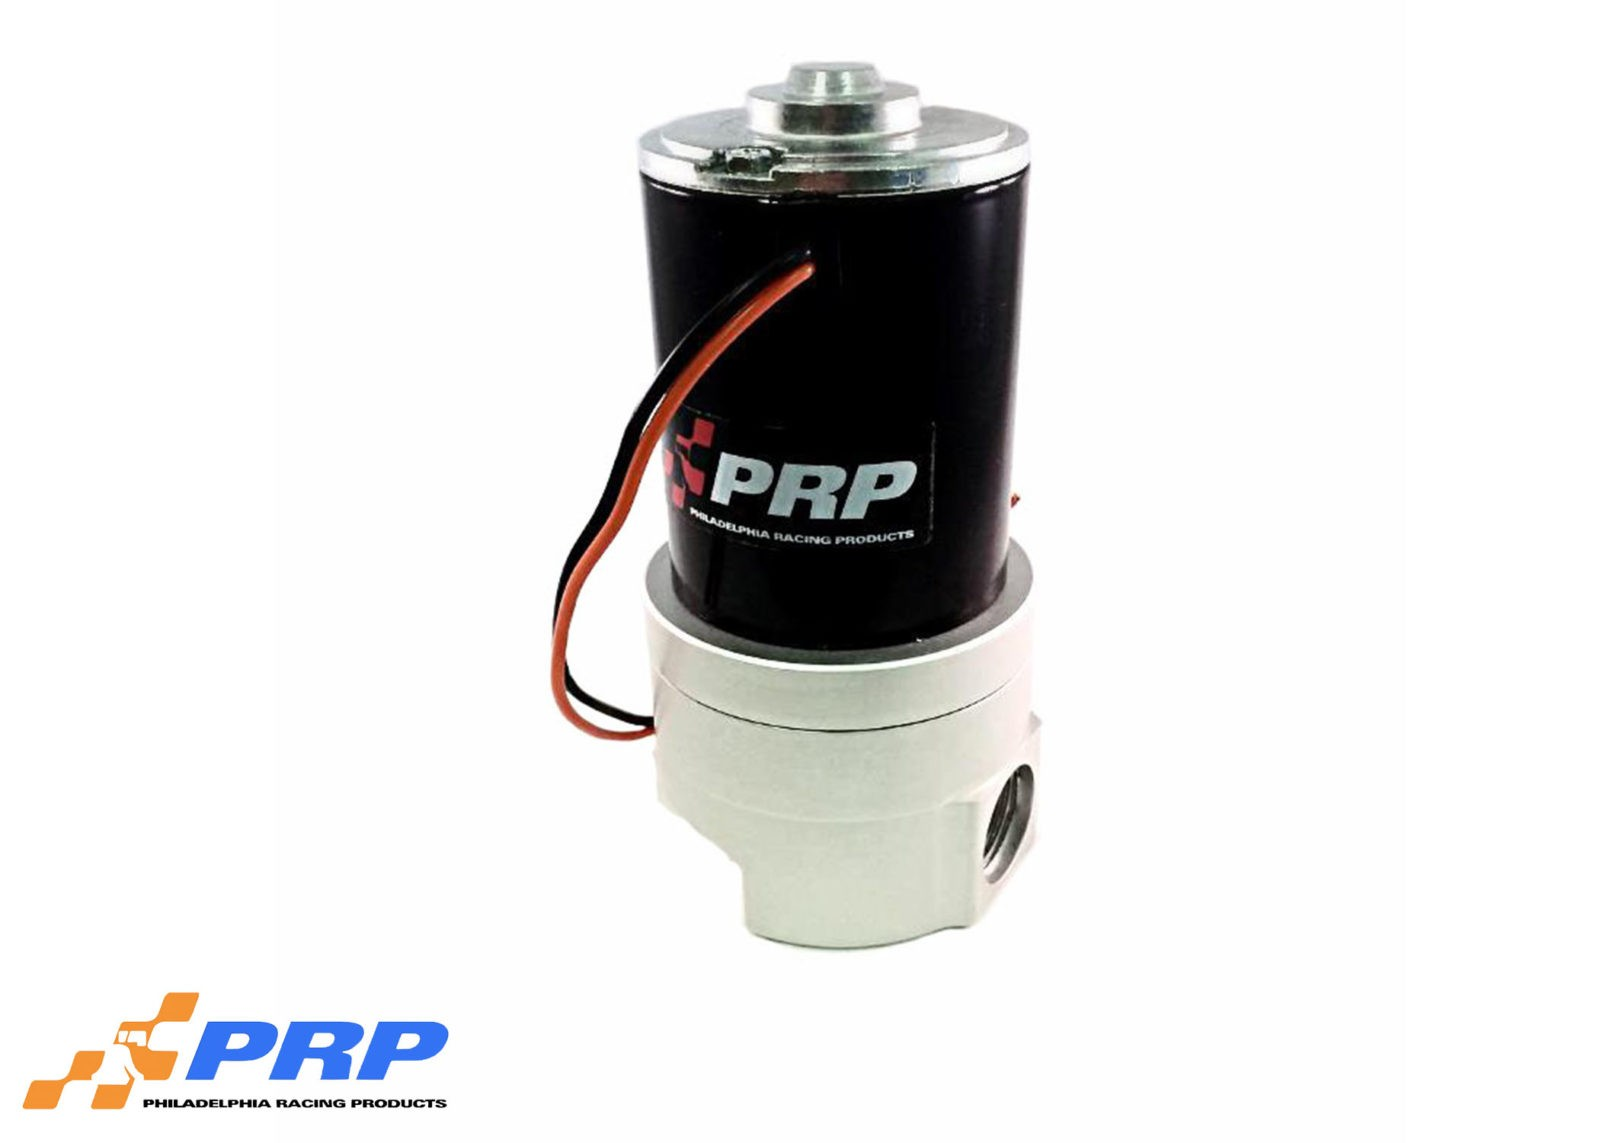 Clear Inline Remote Water Pump made by Philadelphia Racing Products